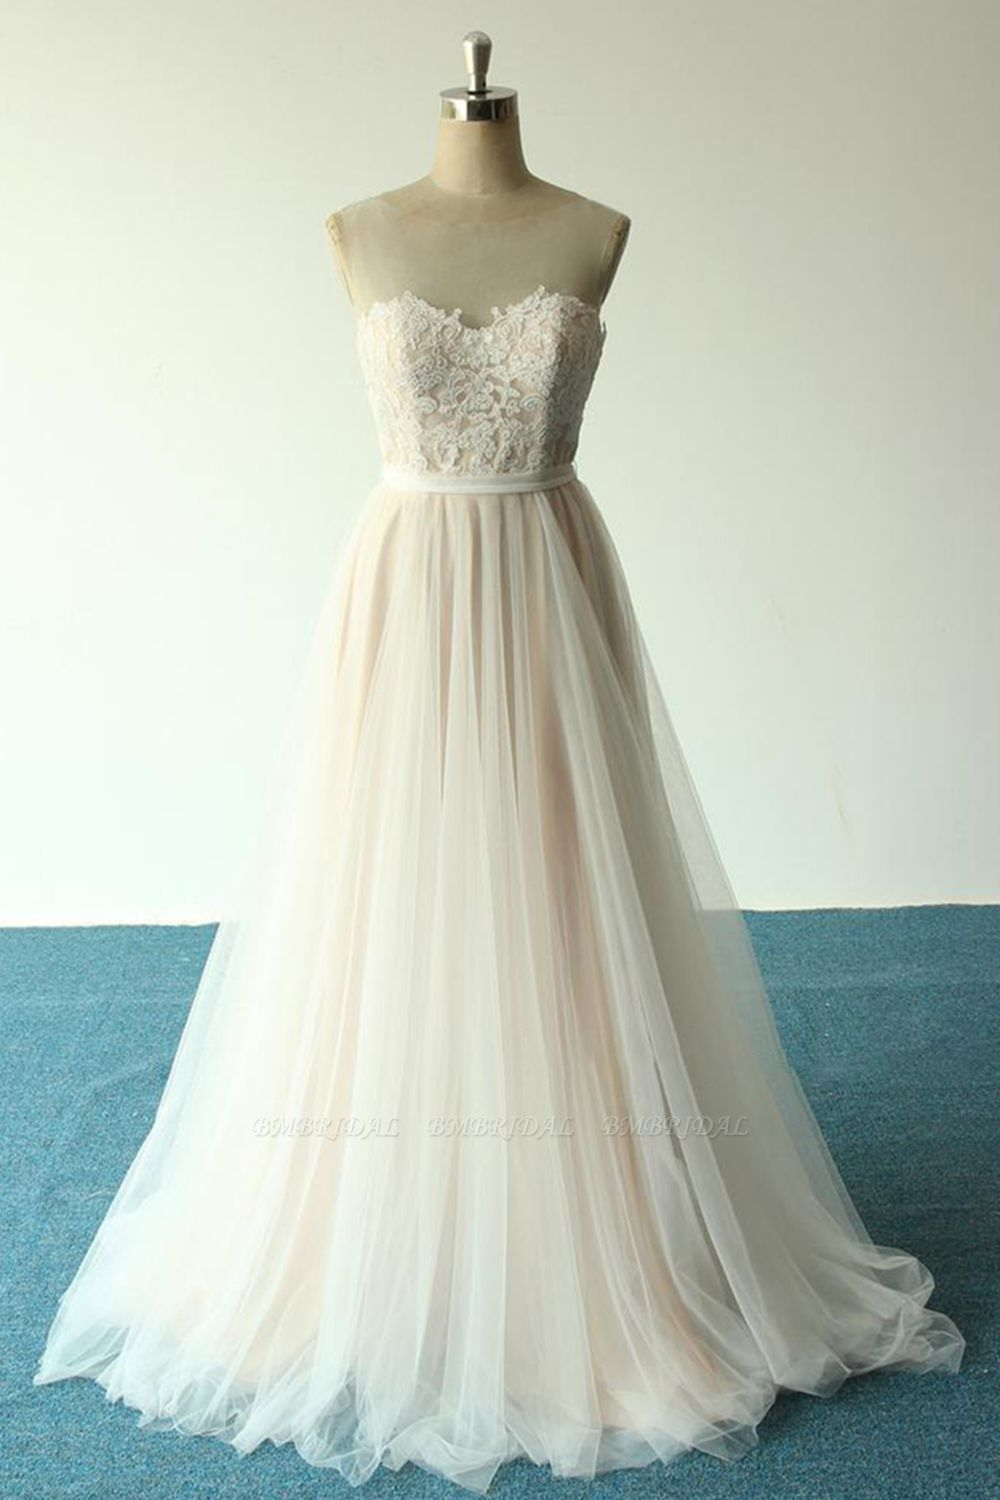 Affordable Jewel Sleeveless A-line Wedding Dresses Tulle Lace Bridal Gowns Online